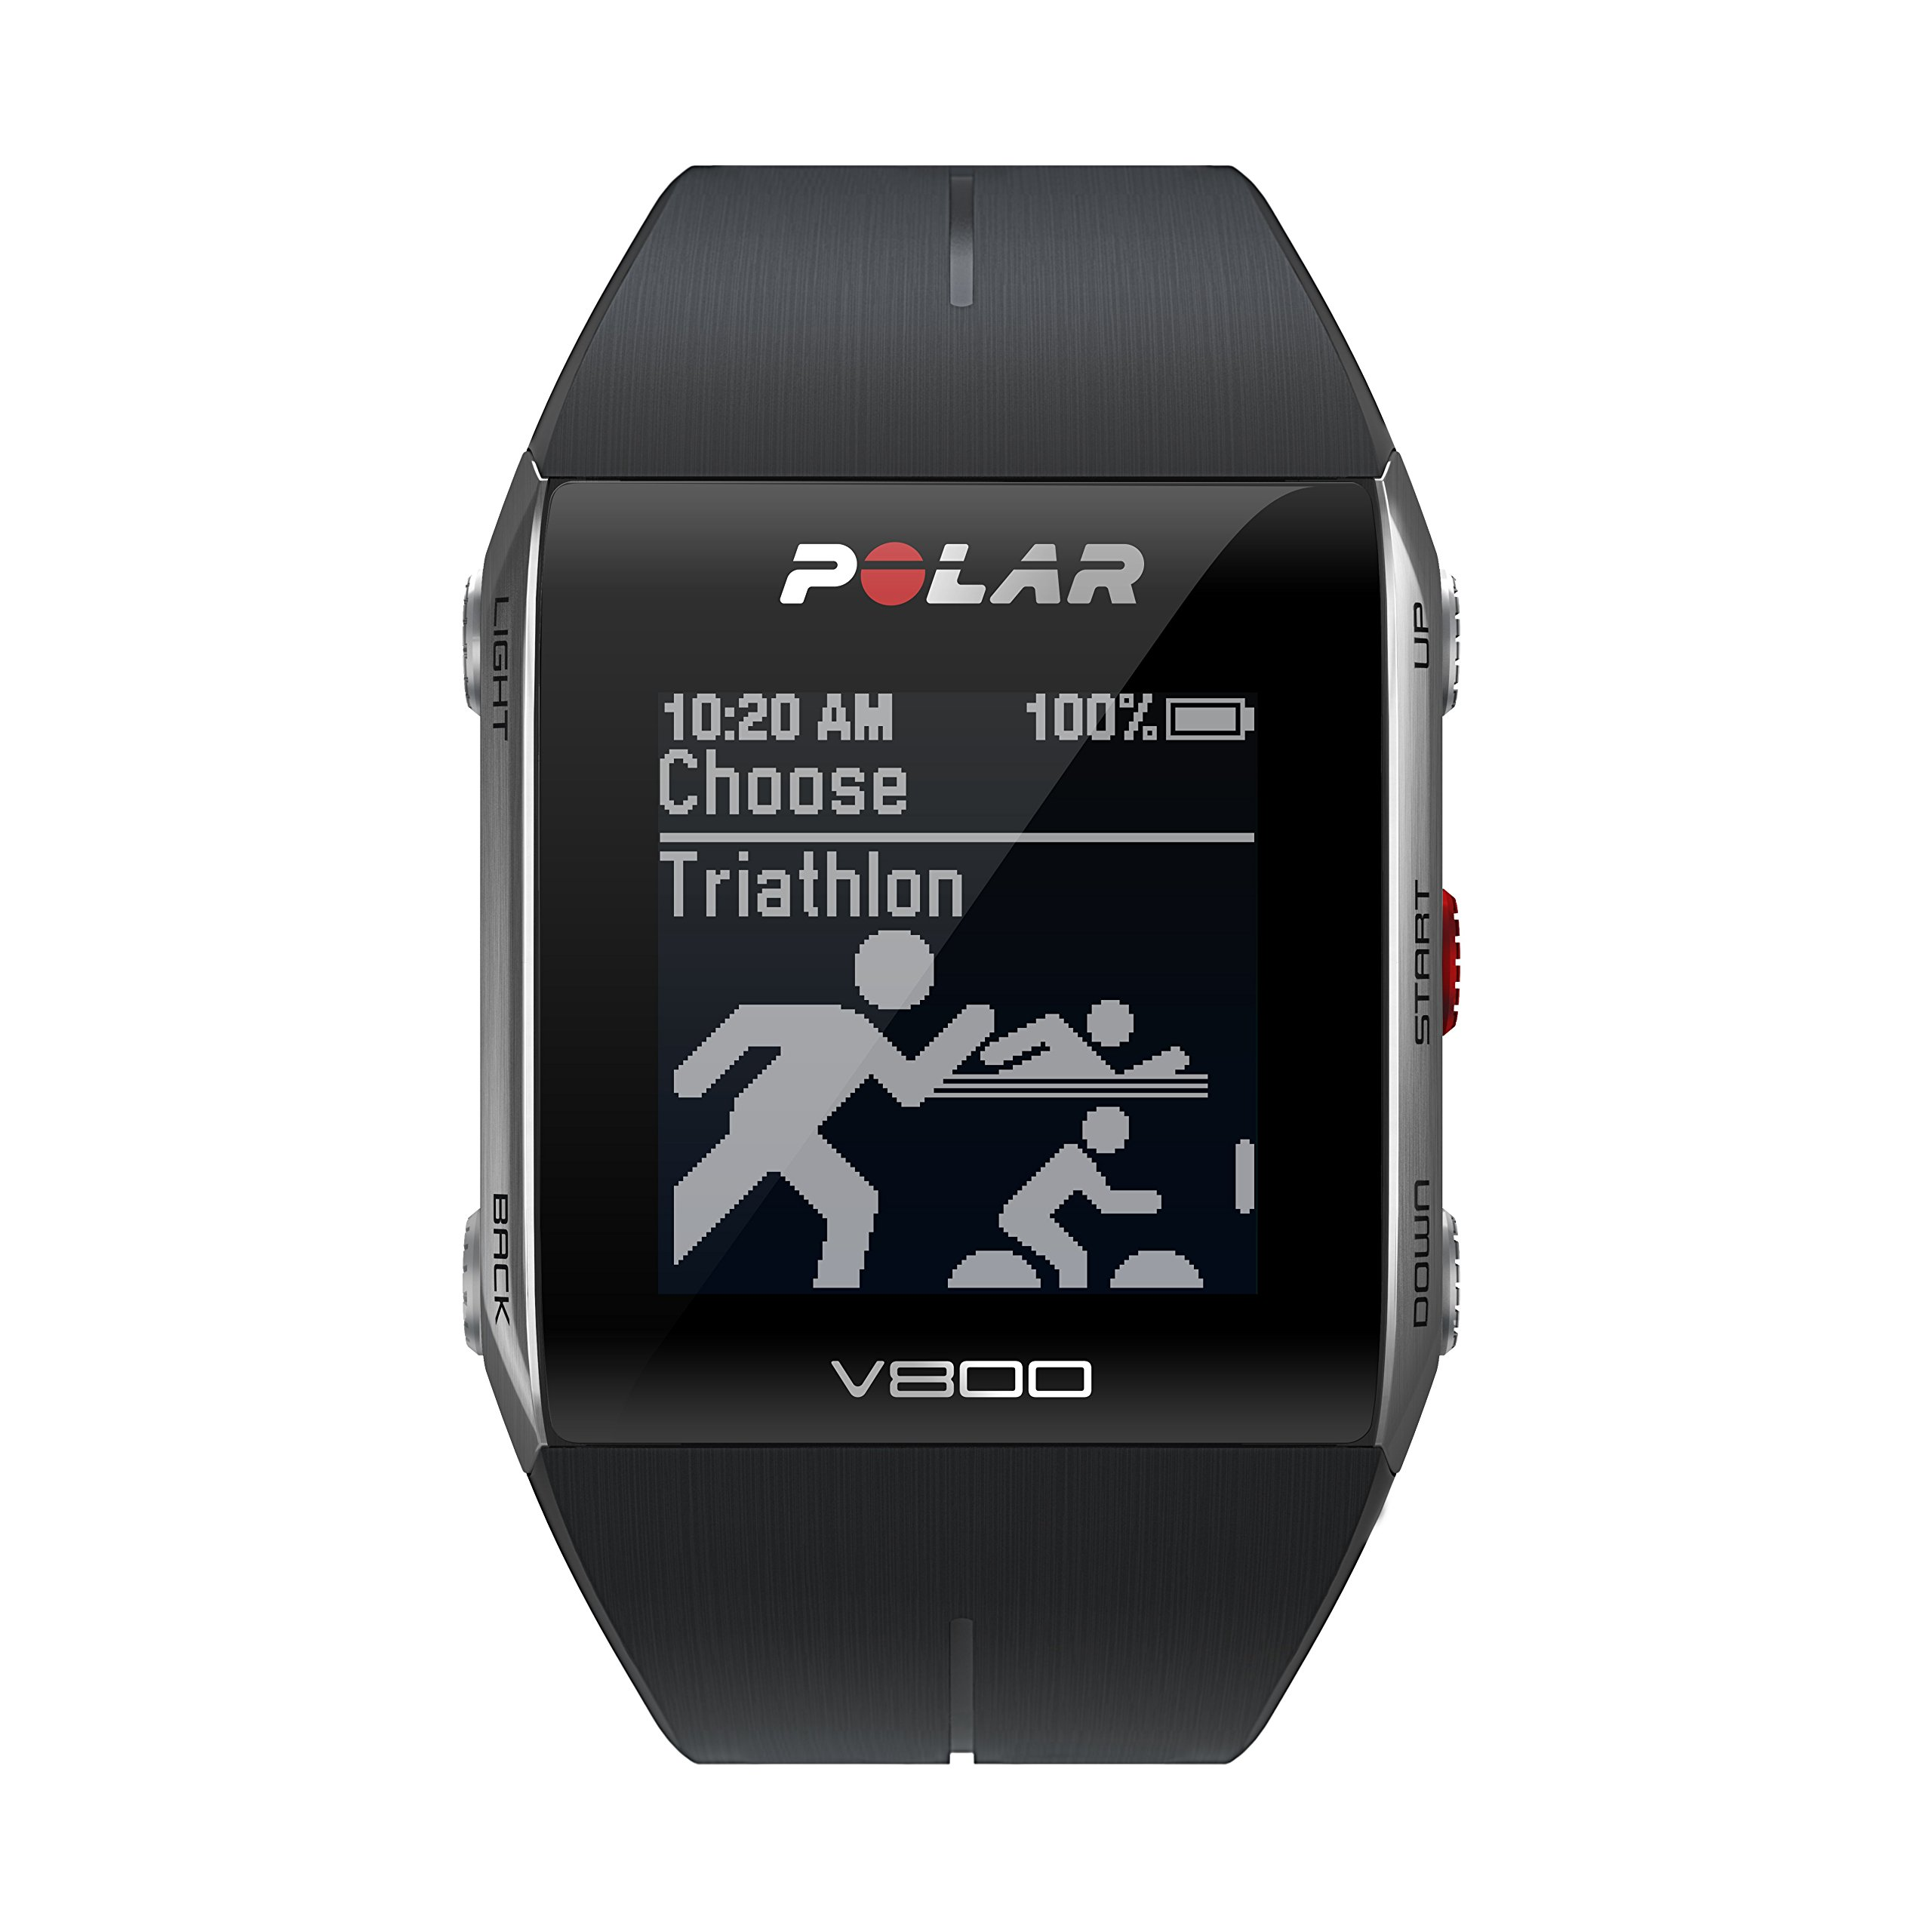 Polar V800 GPS Sports Watch, Black by Polar